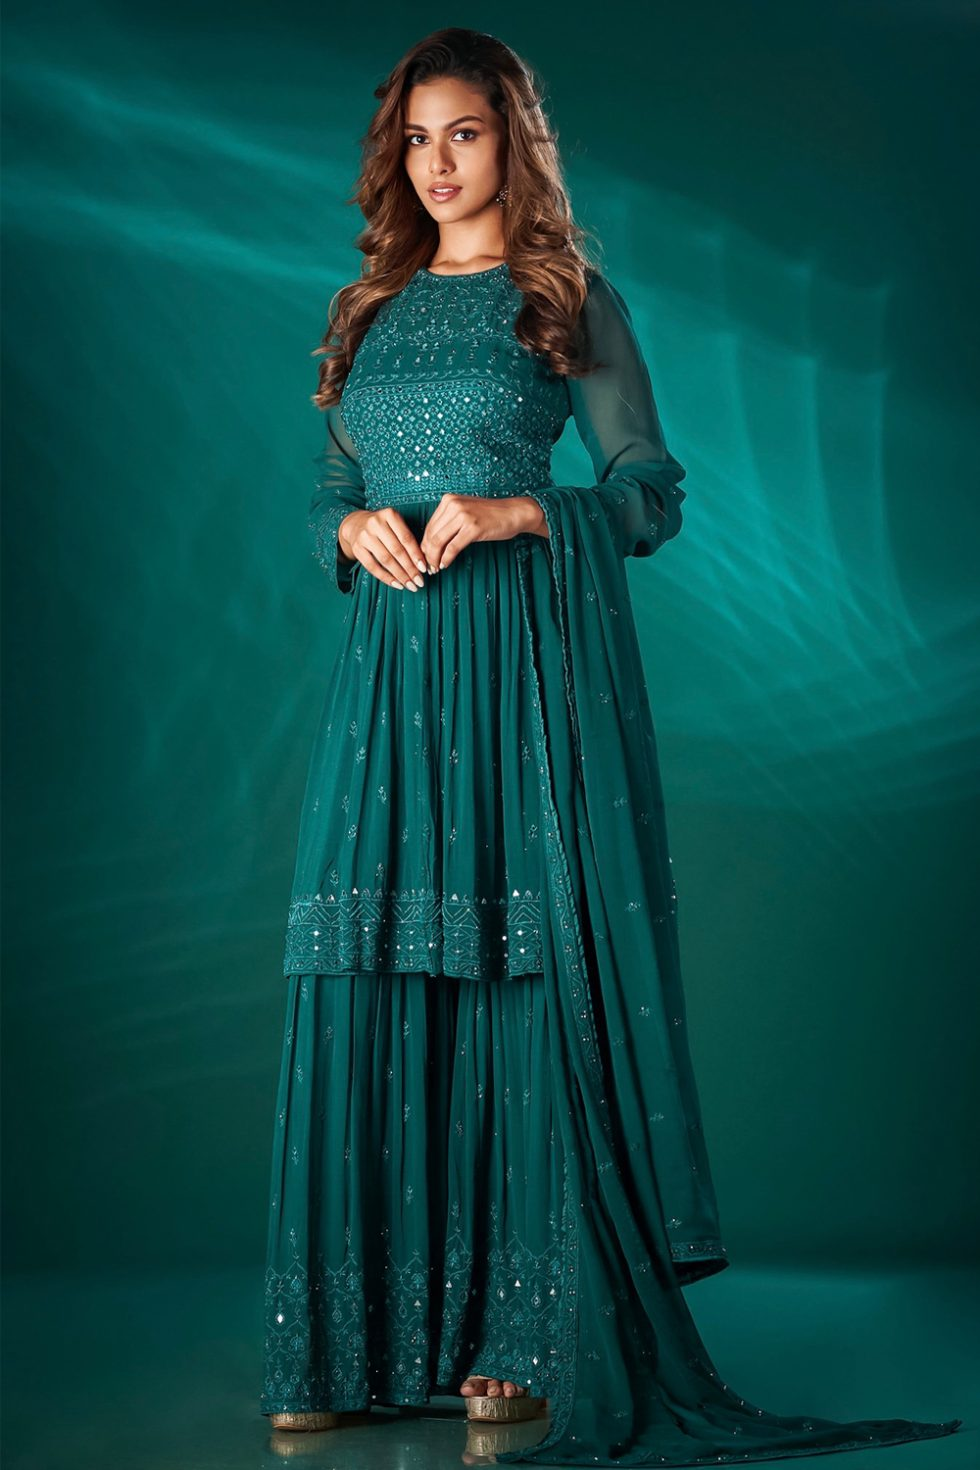 Bottle green single tiered sharara pant set with a peplum style chikan top paired with a matching dupatta and silver highlights.